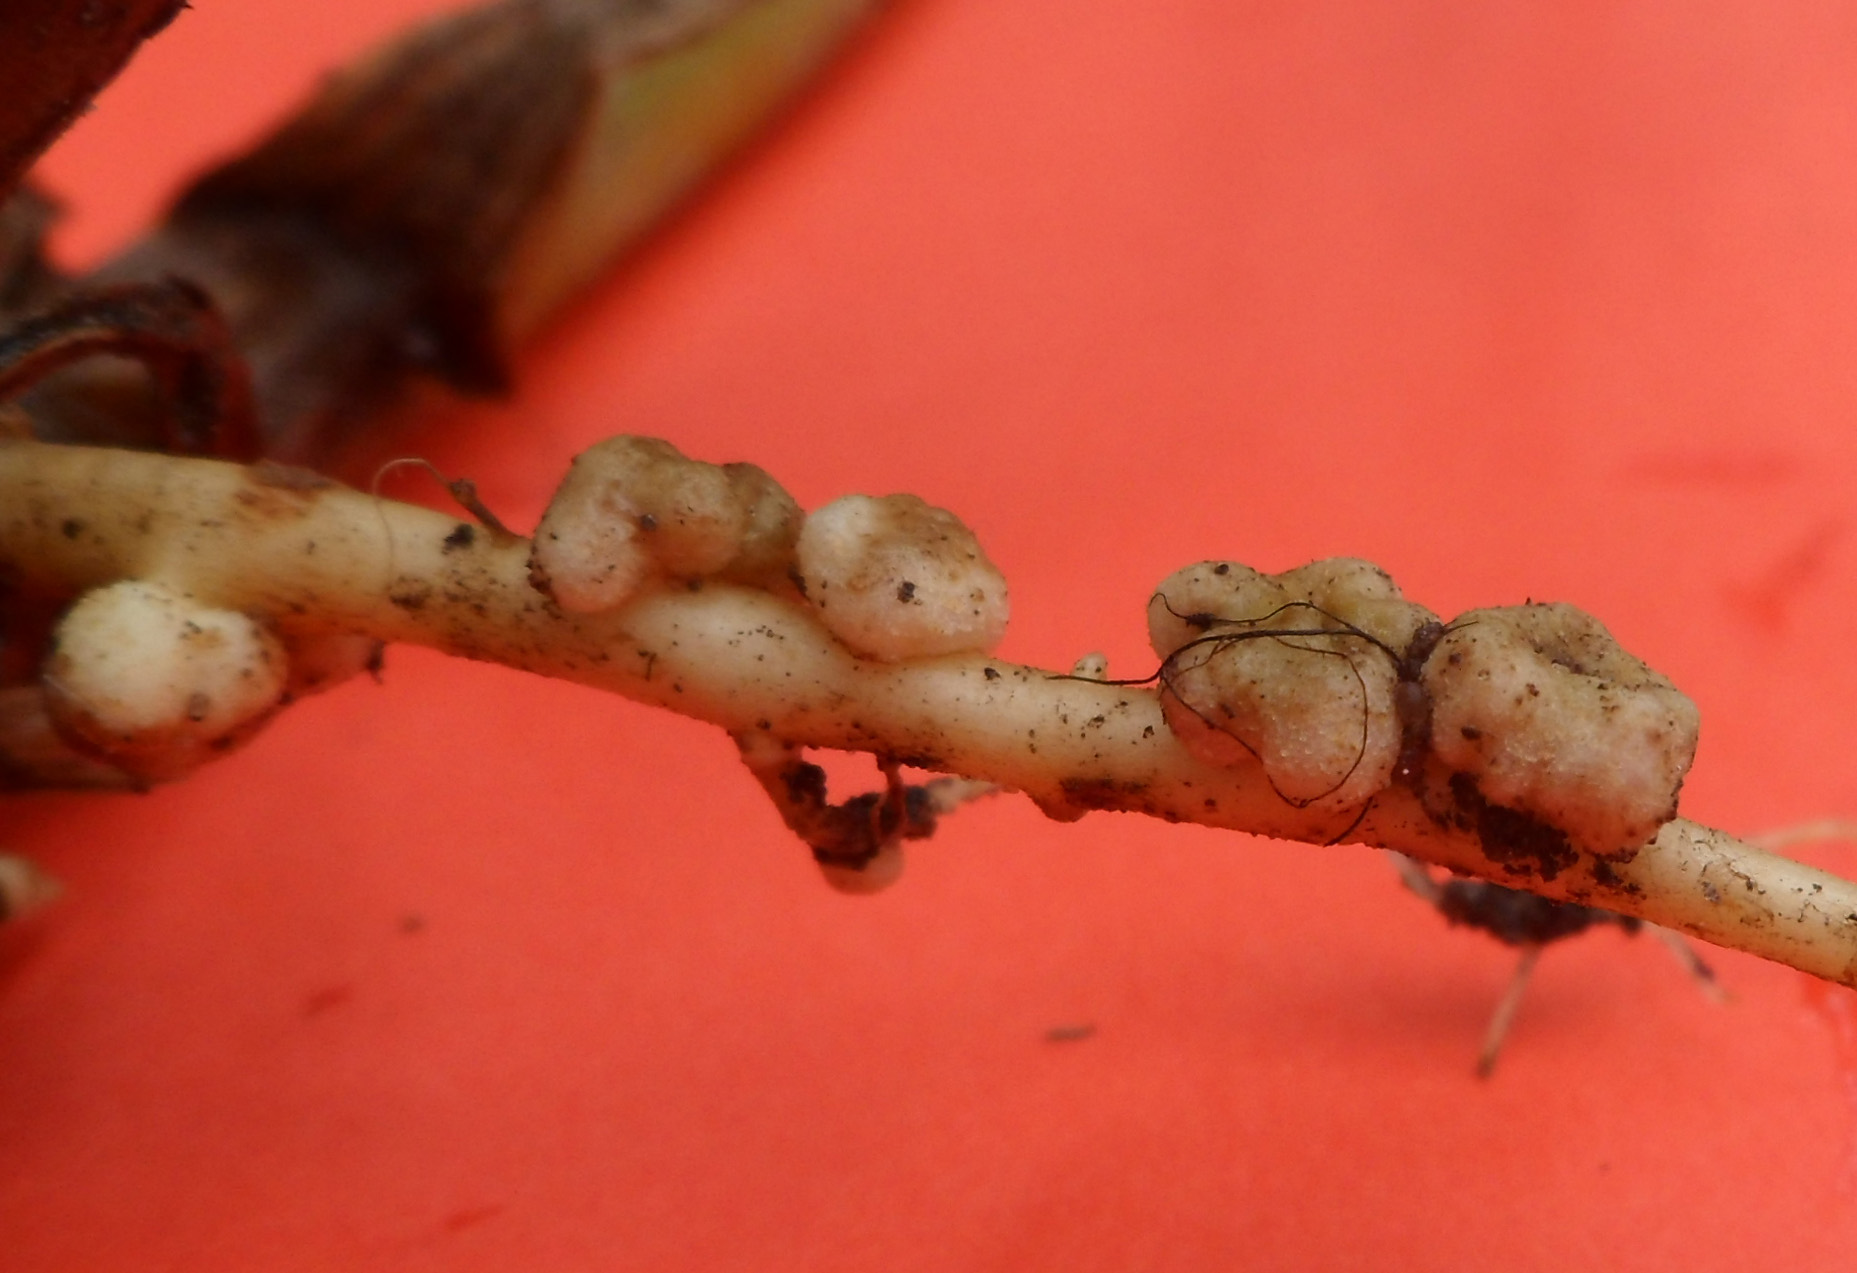 Close-up of a knob on a plant root, that shows the symbiosis between root and microorganism